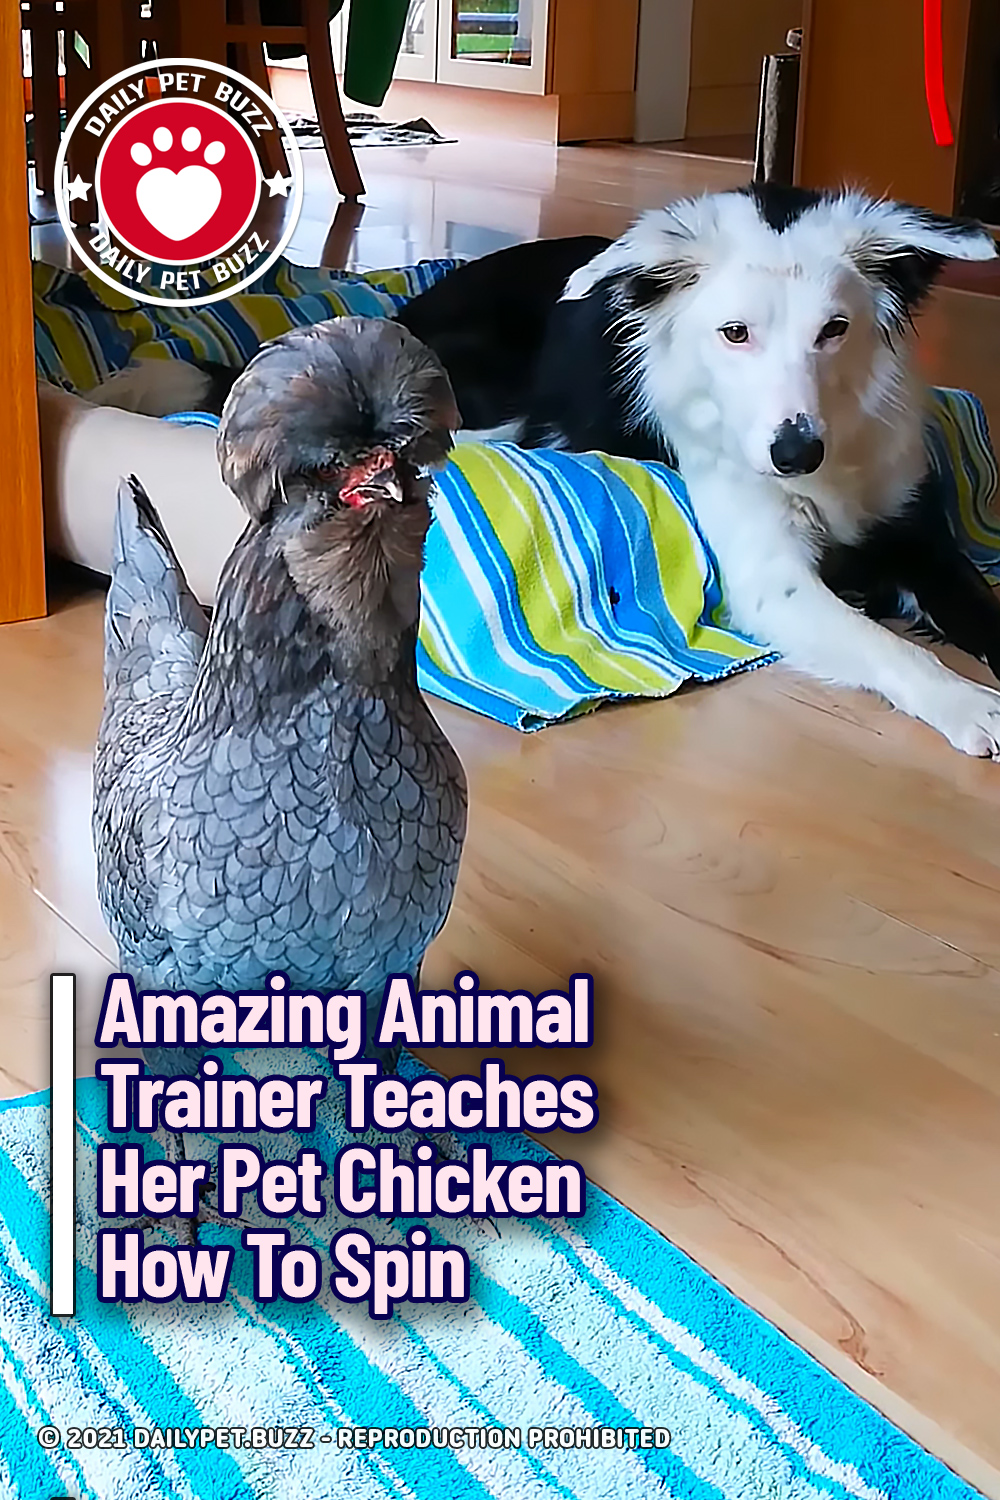 Amazing Animal Trainer Teaches Her Pet Chicken How To Spin